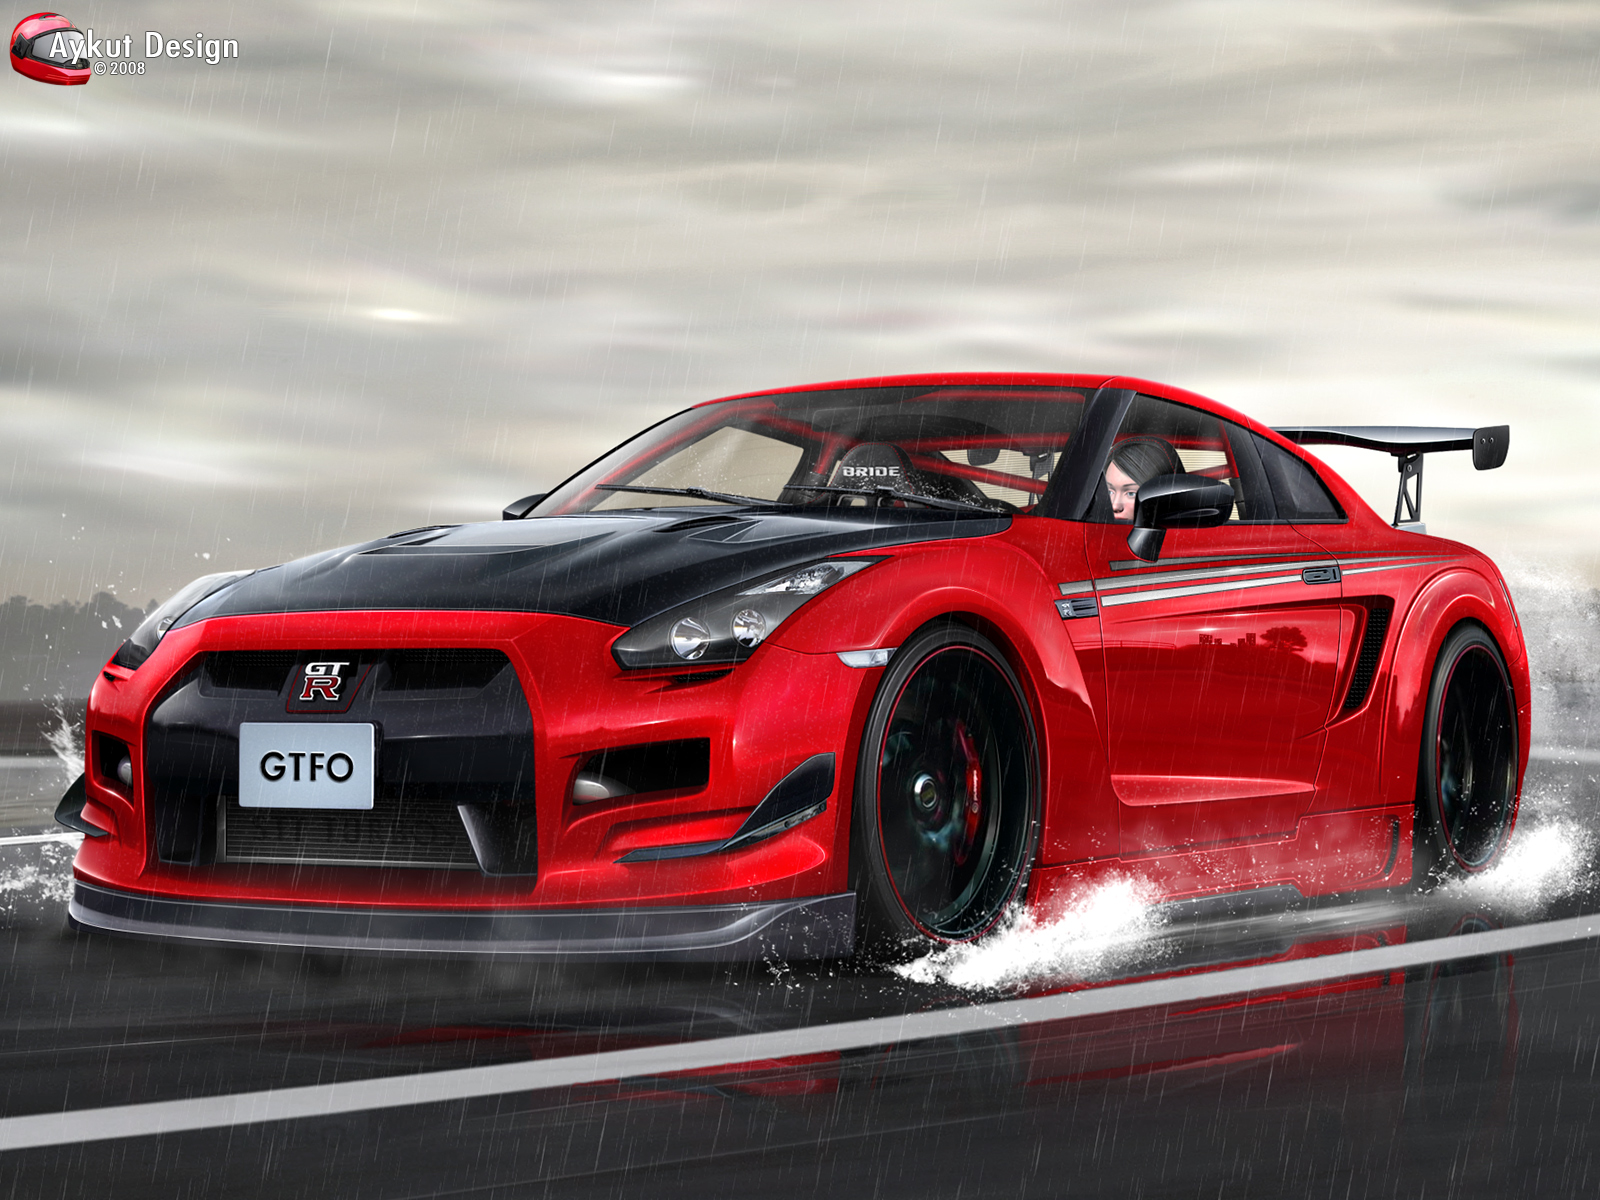 Nissan Gtr 40 Free Hd Car Wallpaper